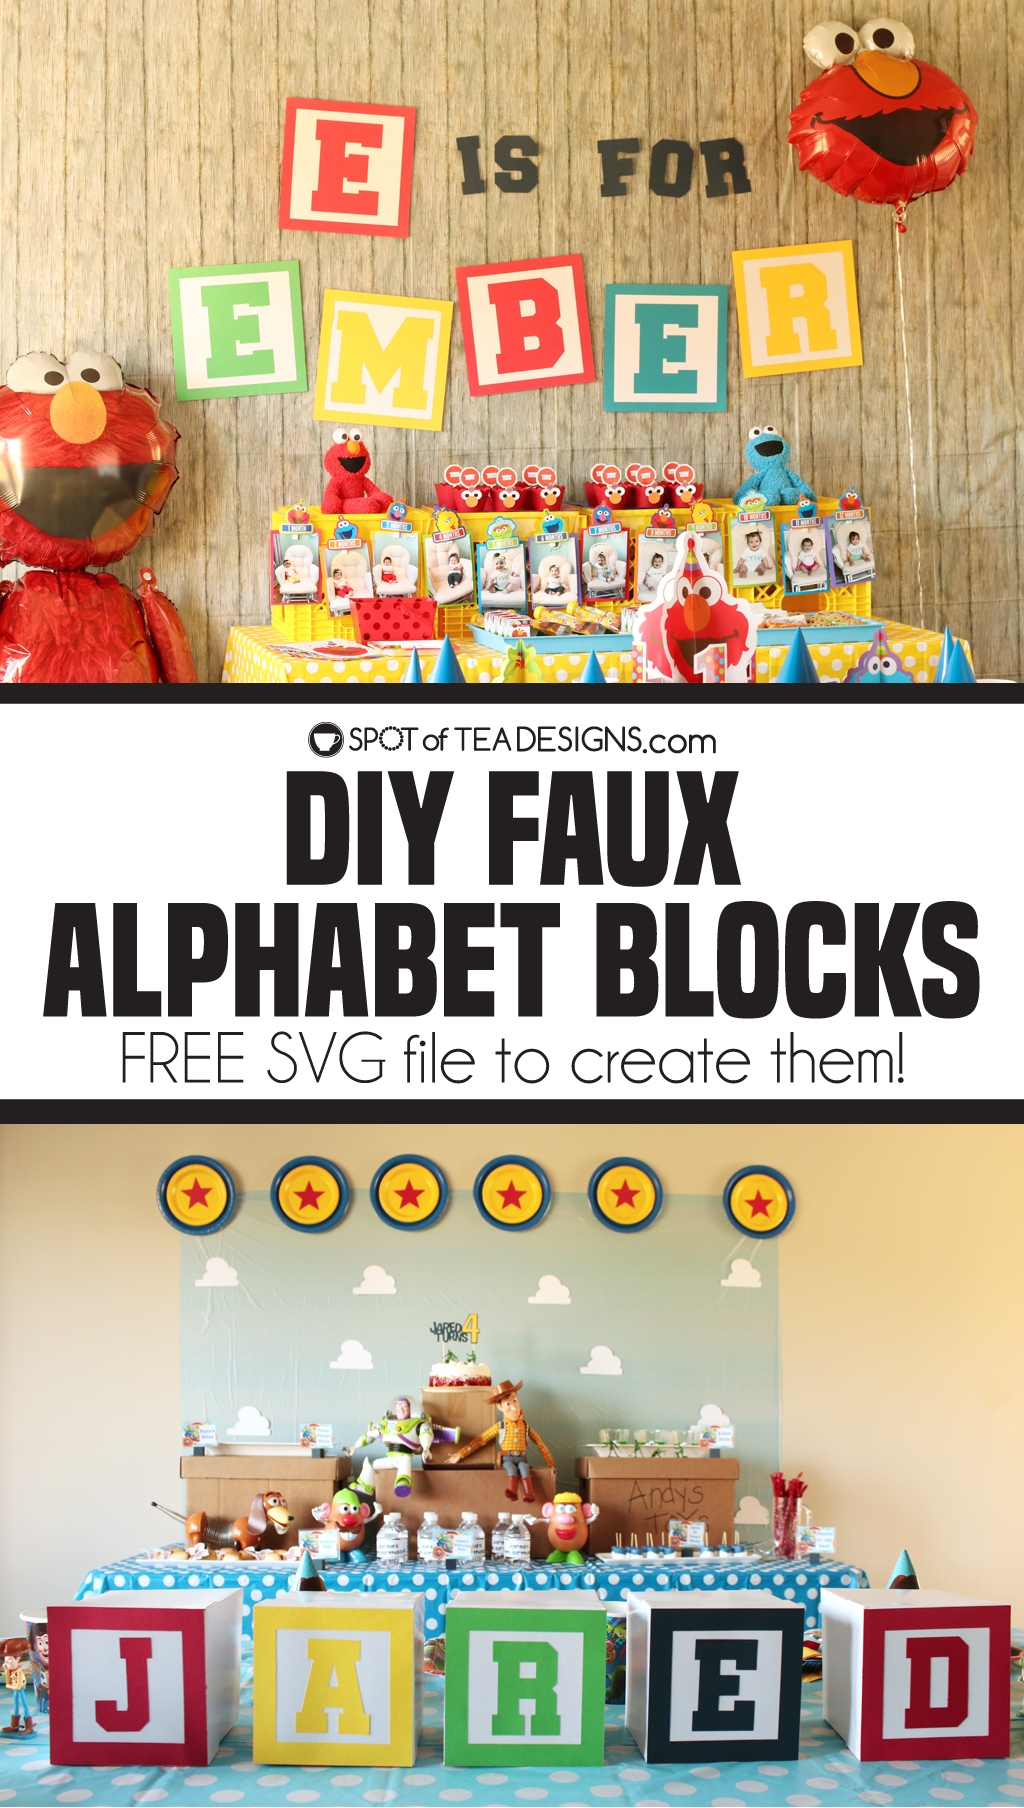 DIY Faux alphabet blocks to use for party decor. Free svg file to create it for any letters! | spotofteadesigns.com